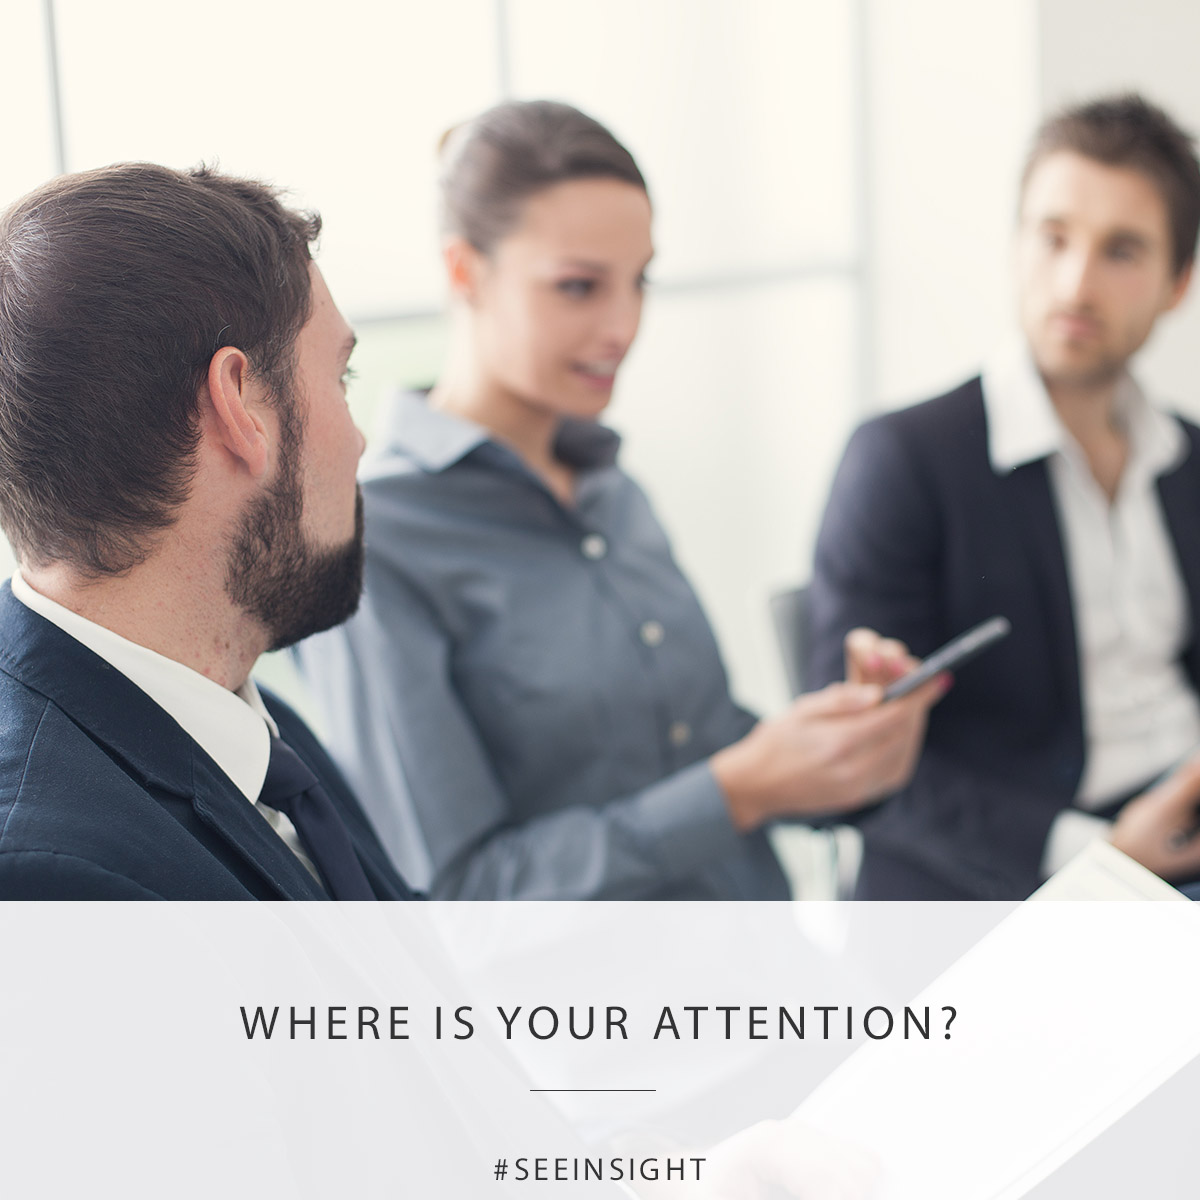 Where is your attention?